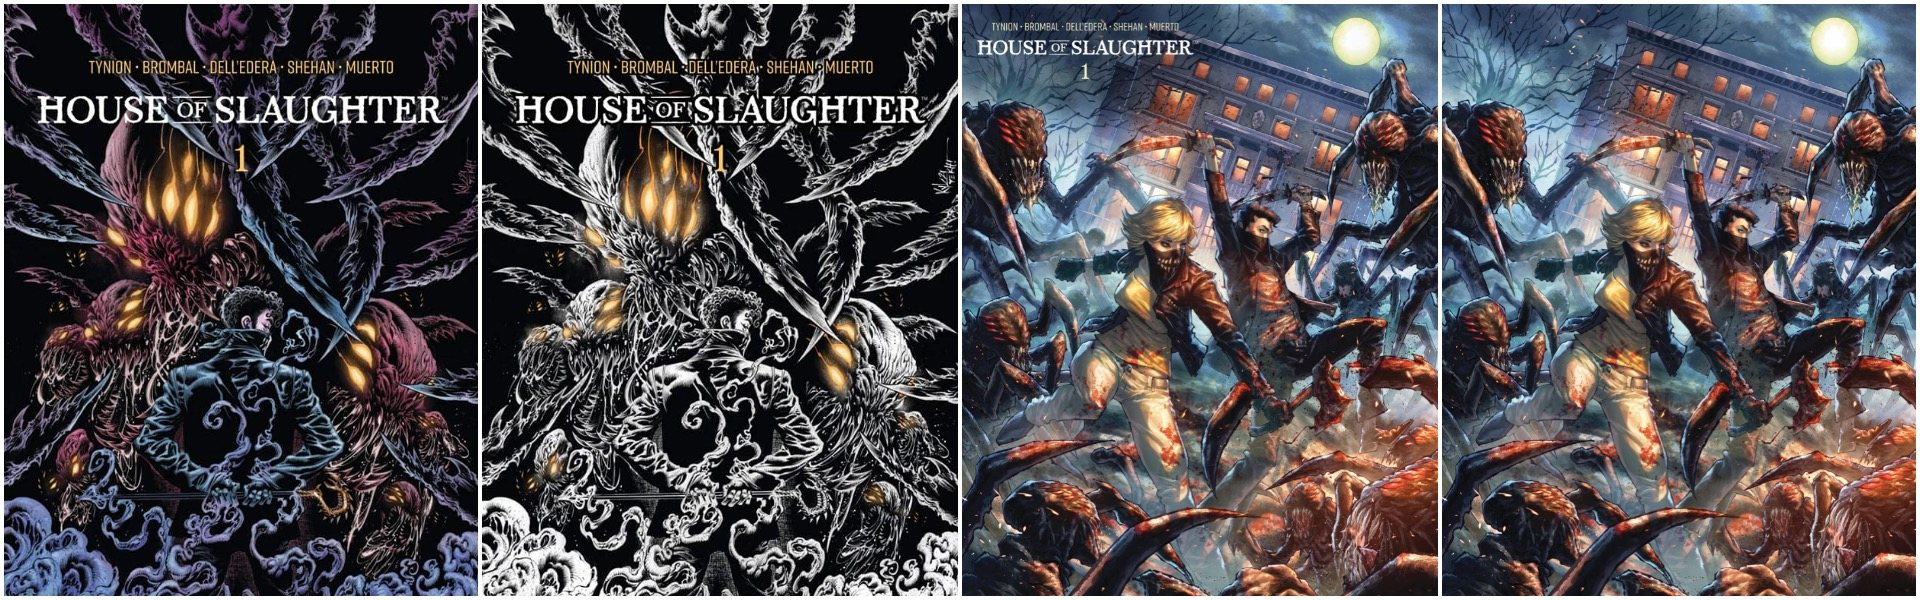 House of Slaughter #1 Exclusives